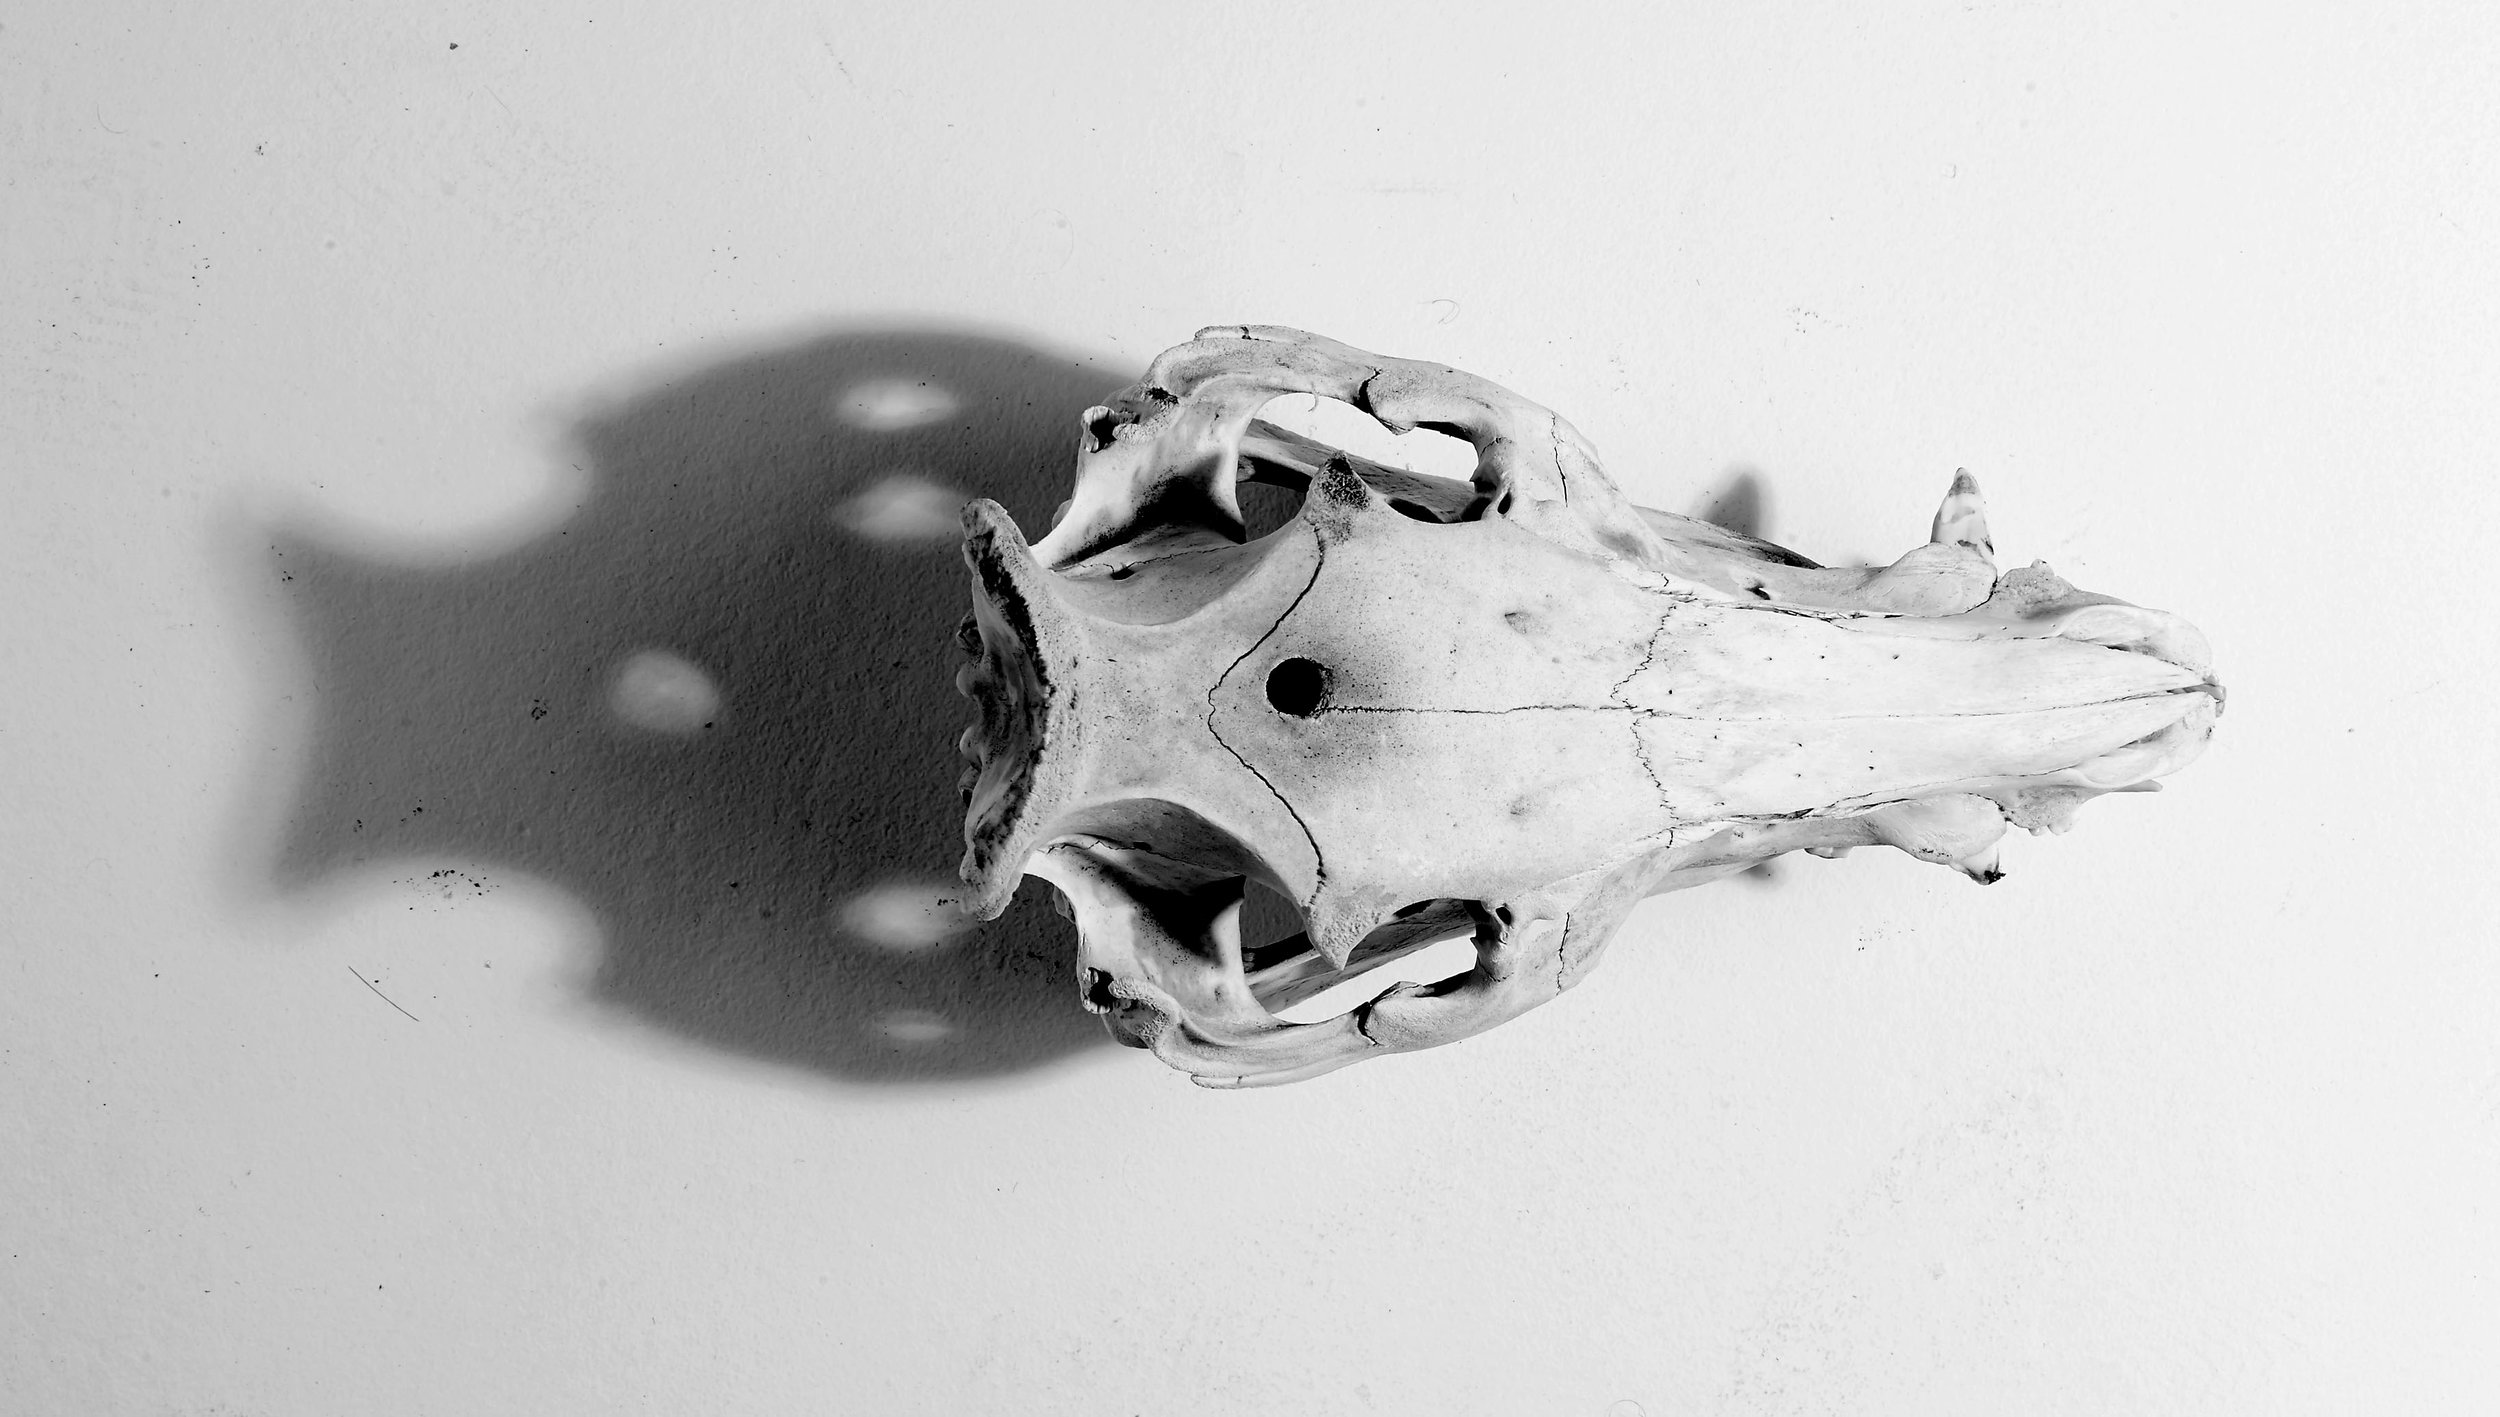 The first pig that was used to make our house made charcuterie - this is a photograph of the skull